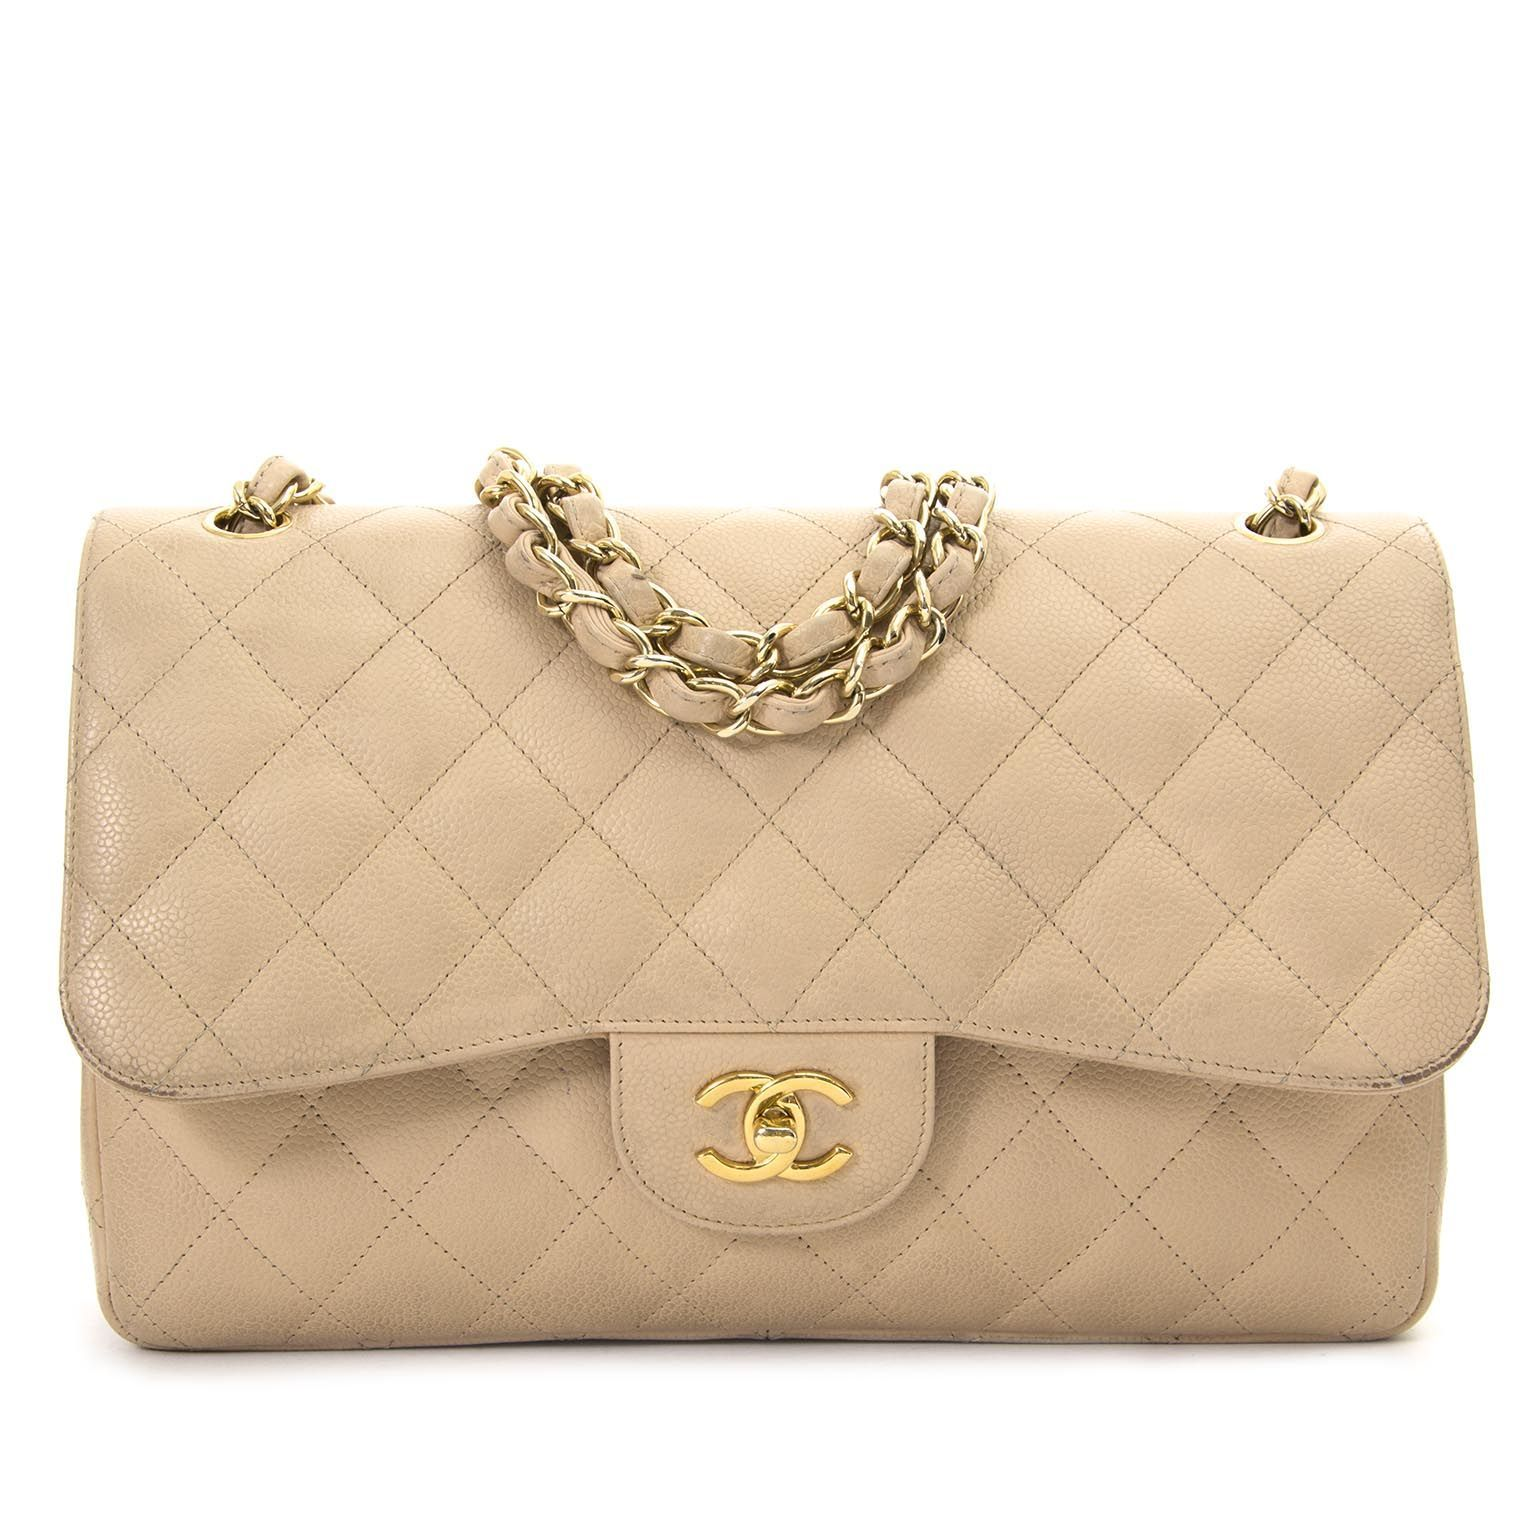 dc1380fd915d Chanel Jumbo Beige Double Classic Flap Bag Caviar GHW now for sale at Labellov  vintage webshop. #chaneljumboflapbag